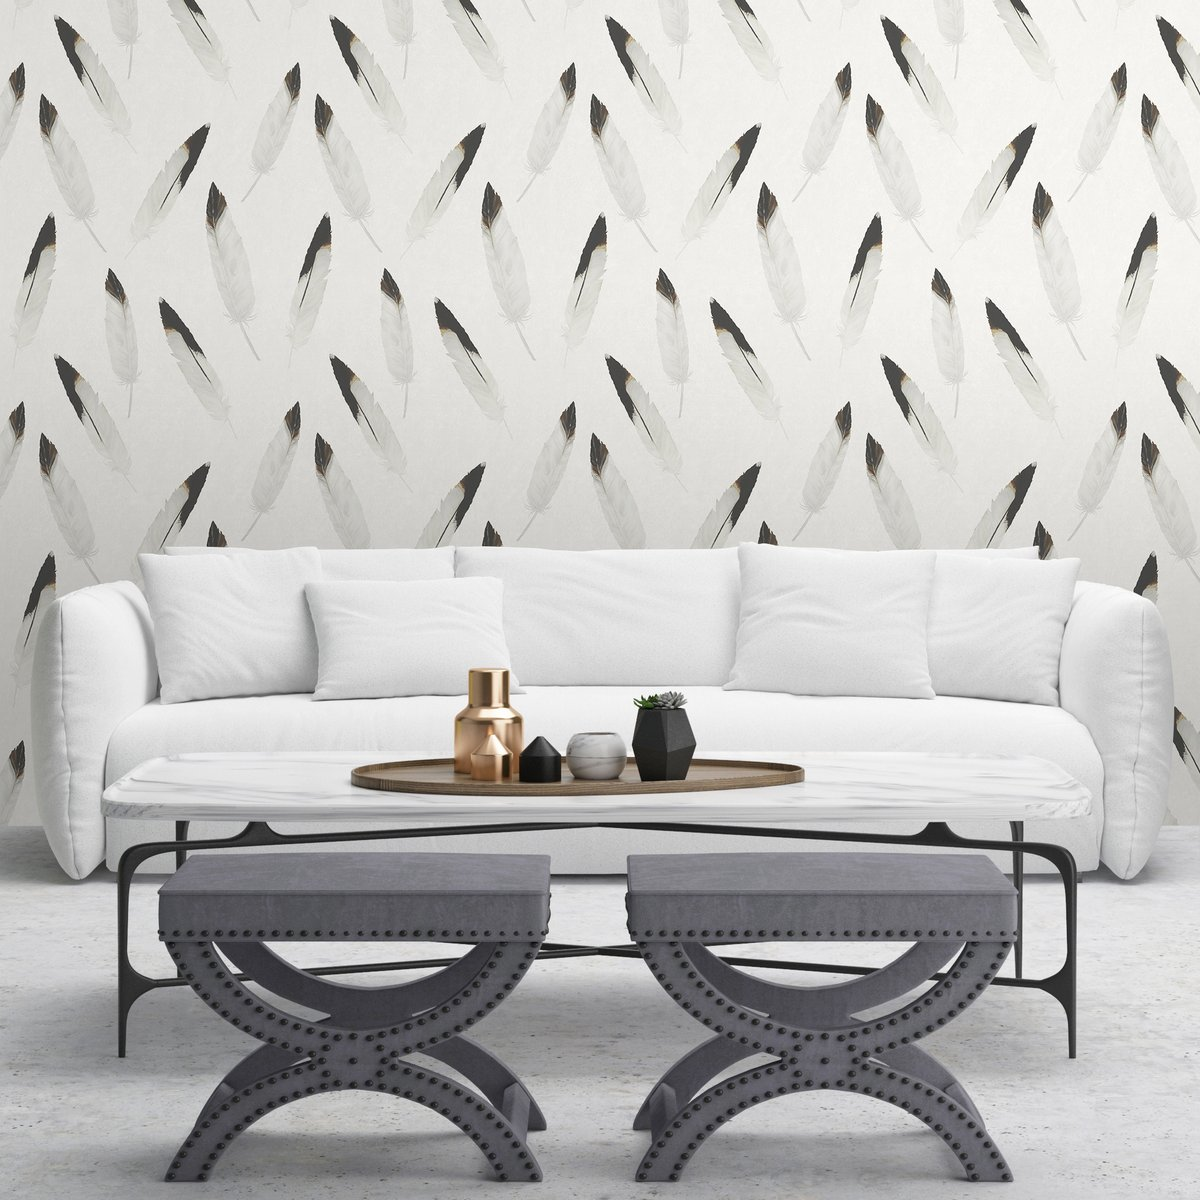 Loving seeing the new Hunley design in grey - a new addition to the West Heritage Collection. What complementary colour would you go for?#homedecor #decor #homedesign #home #design #interiordesign #wallpaper #painting #homesinspiration #inspiration #instainspo